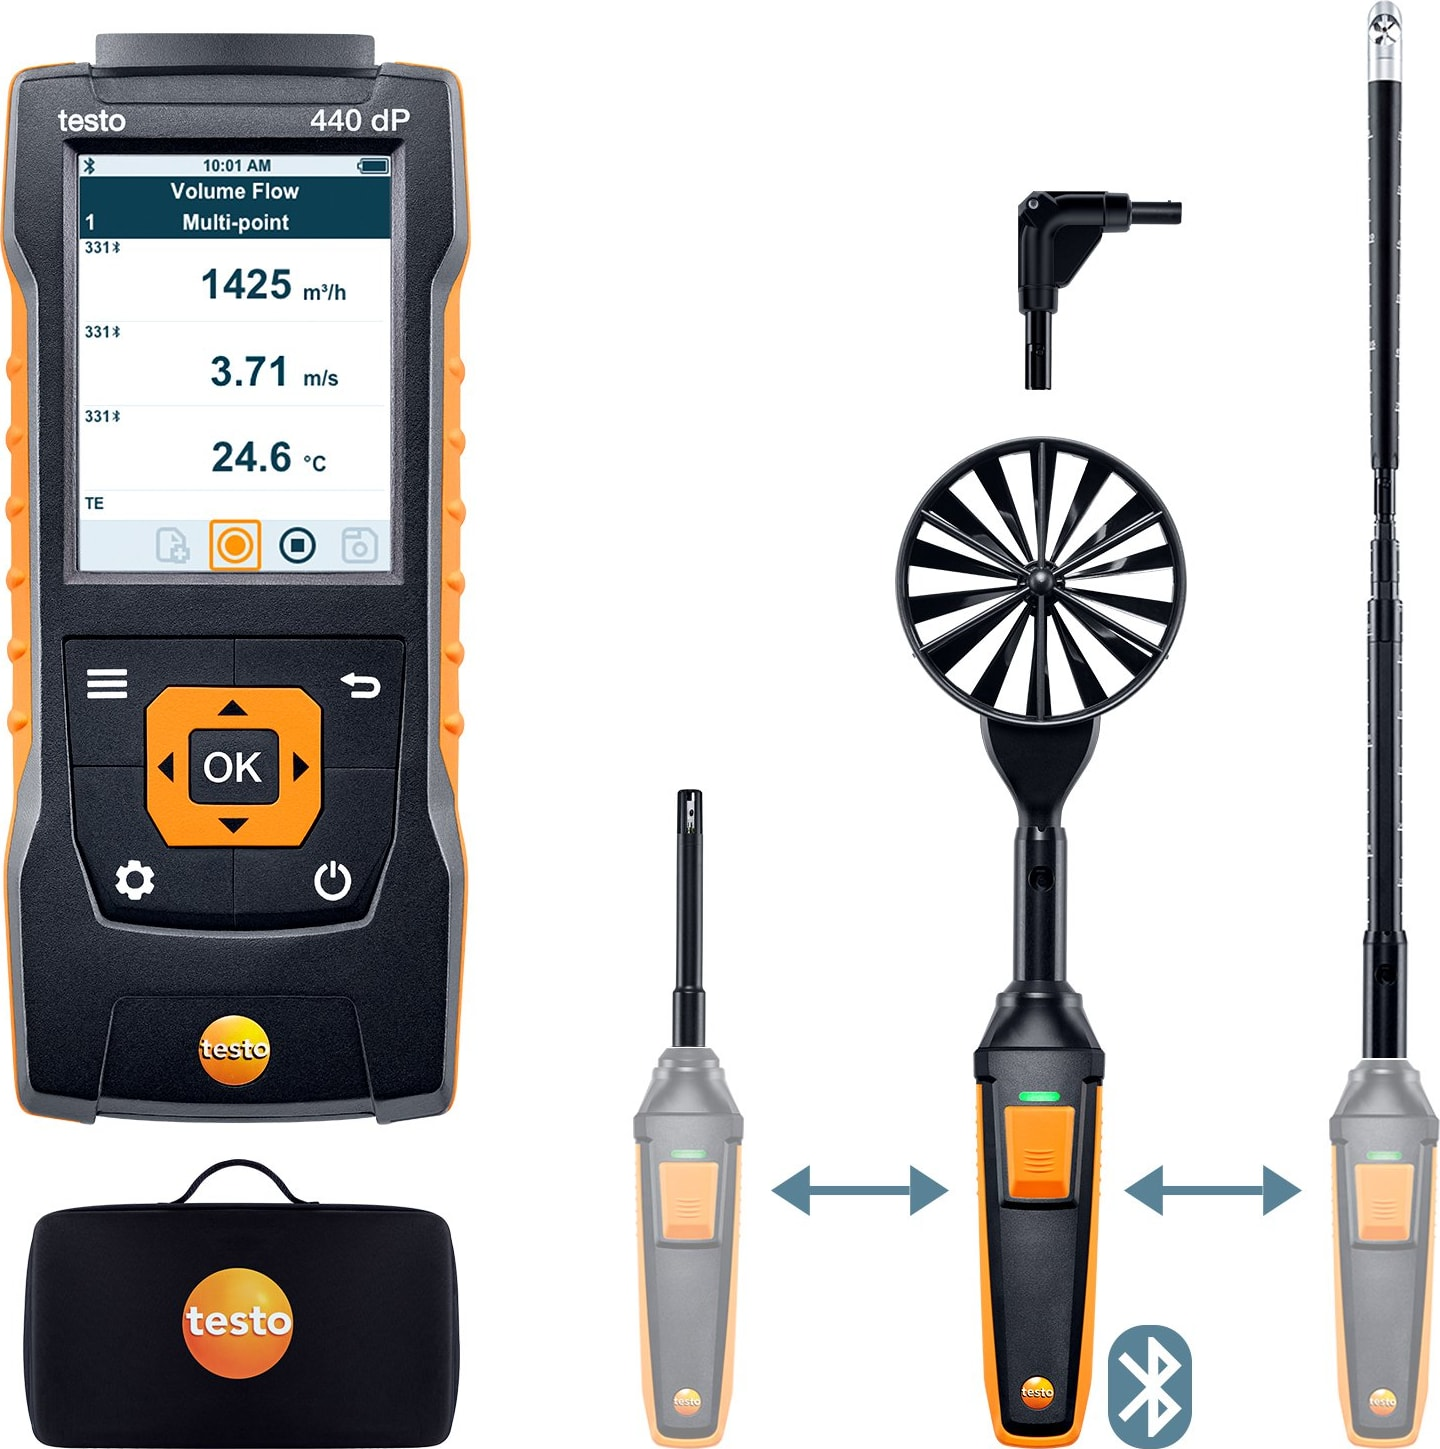 Testo 440 dP - Airflow ComboKit 1 with Bluetooth and Delta P, Part number 0563 4410